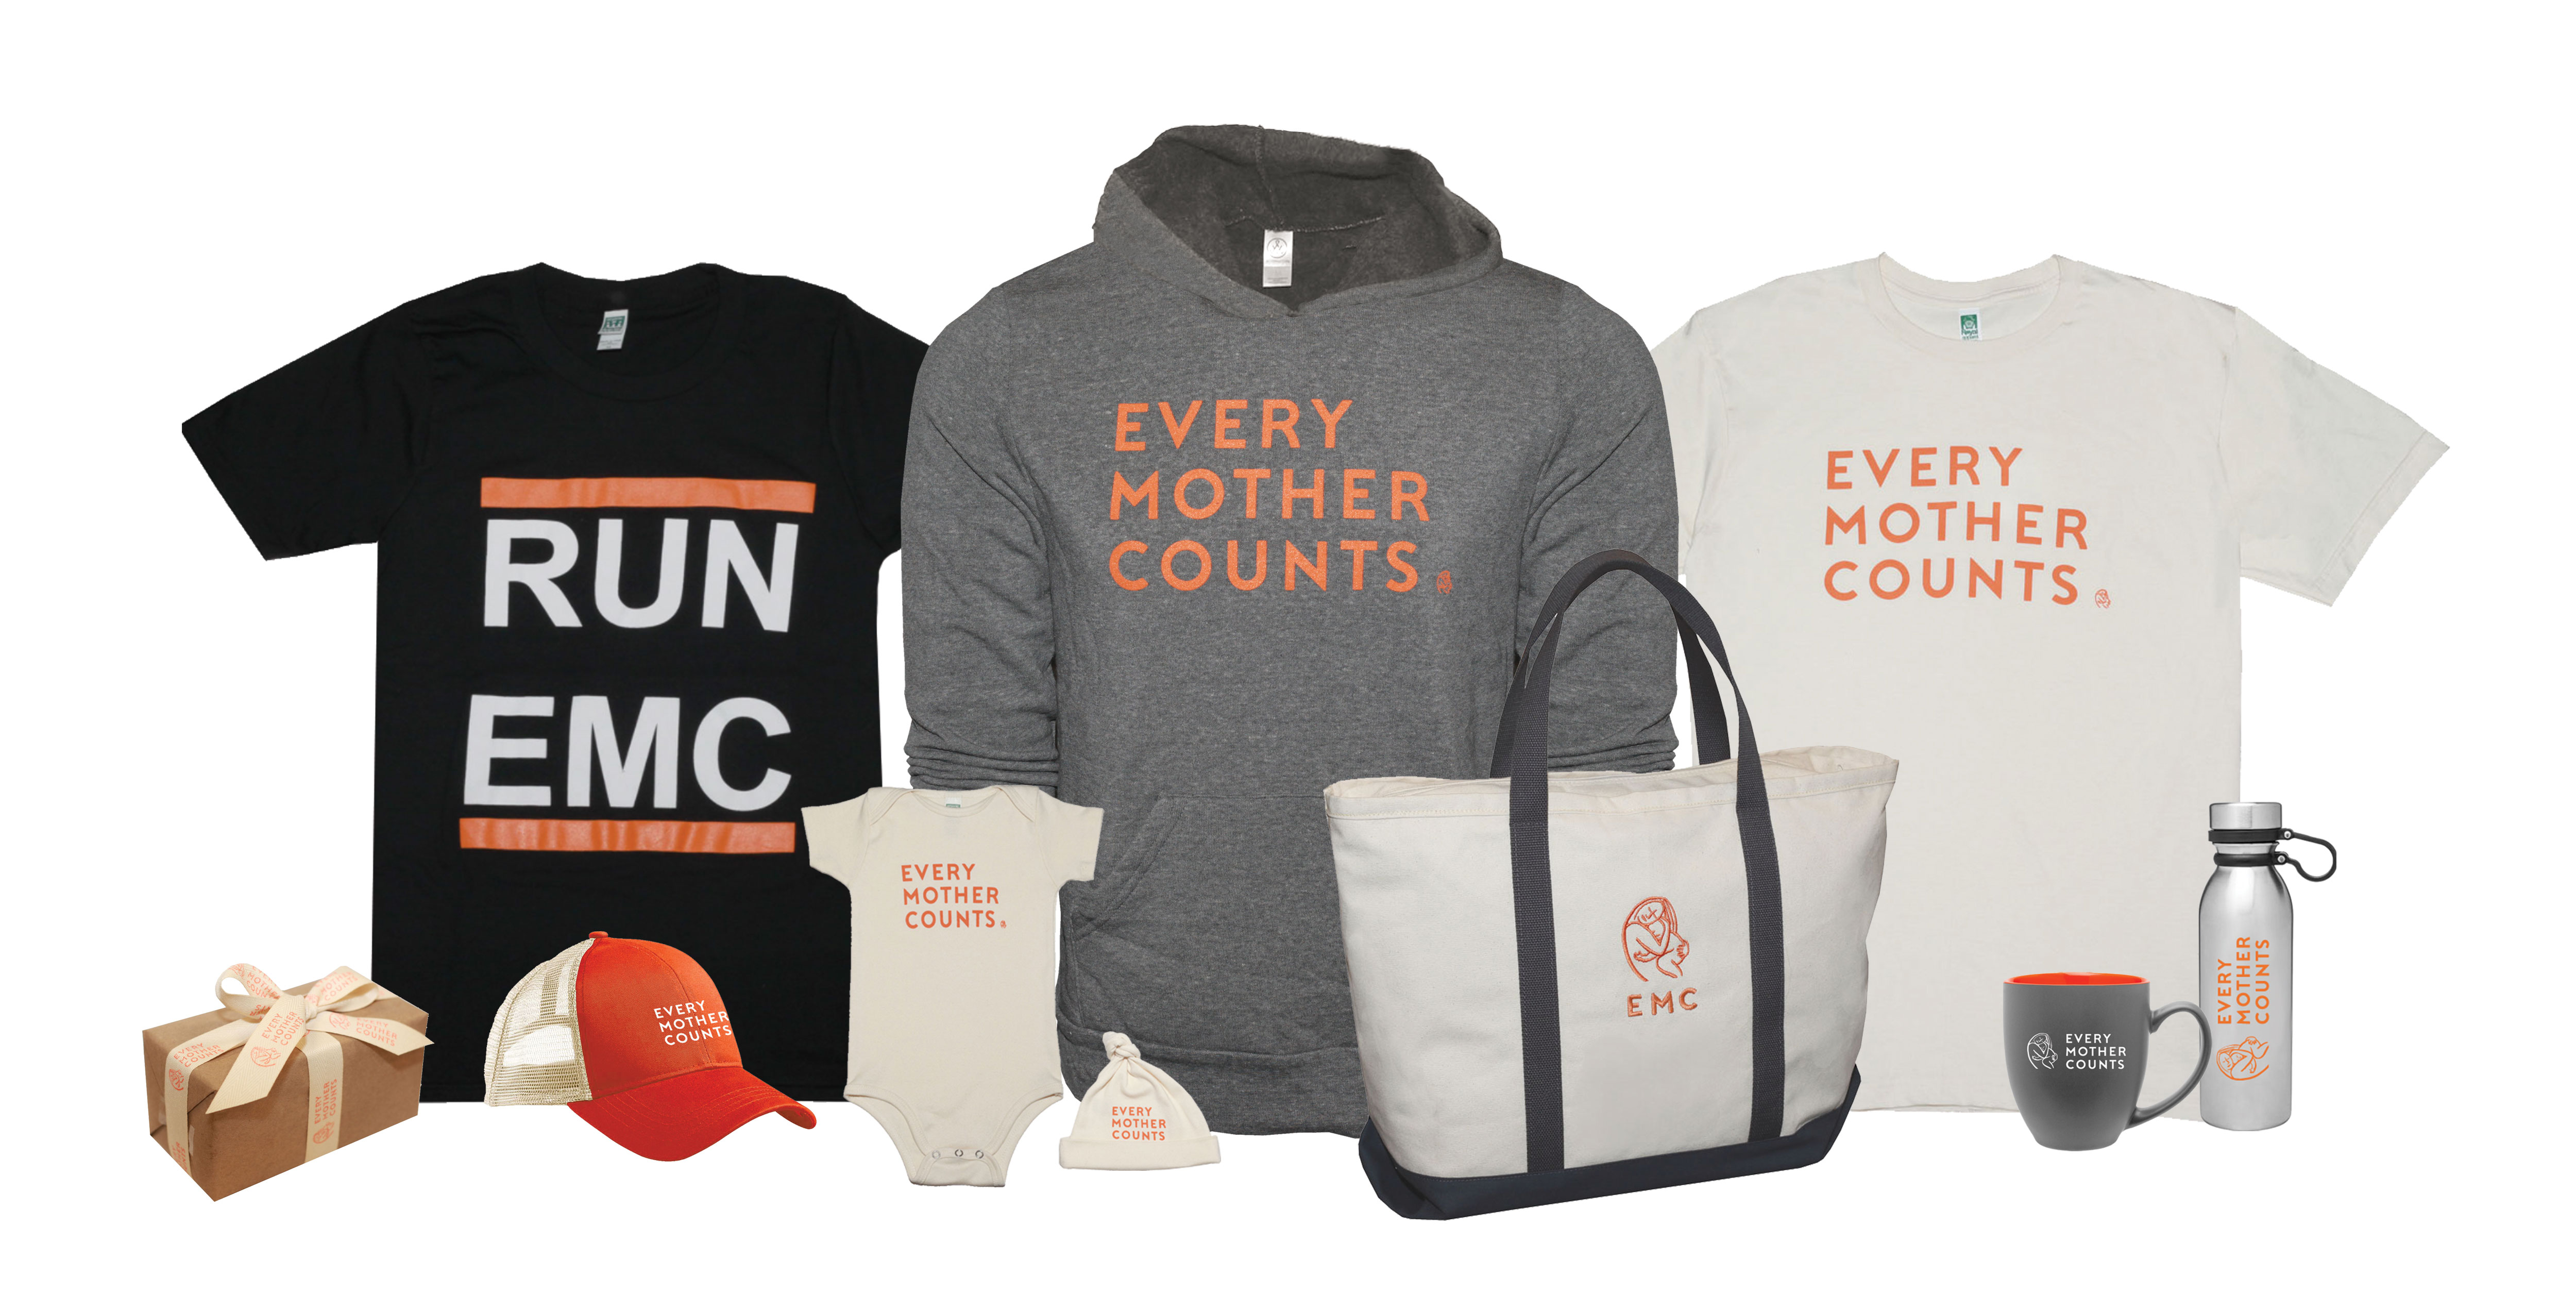 Welcome to the Every Mother Counts Store